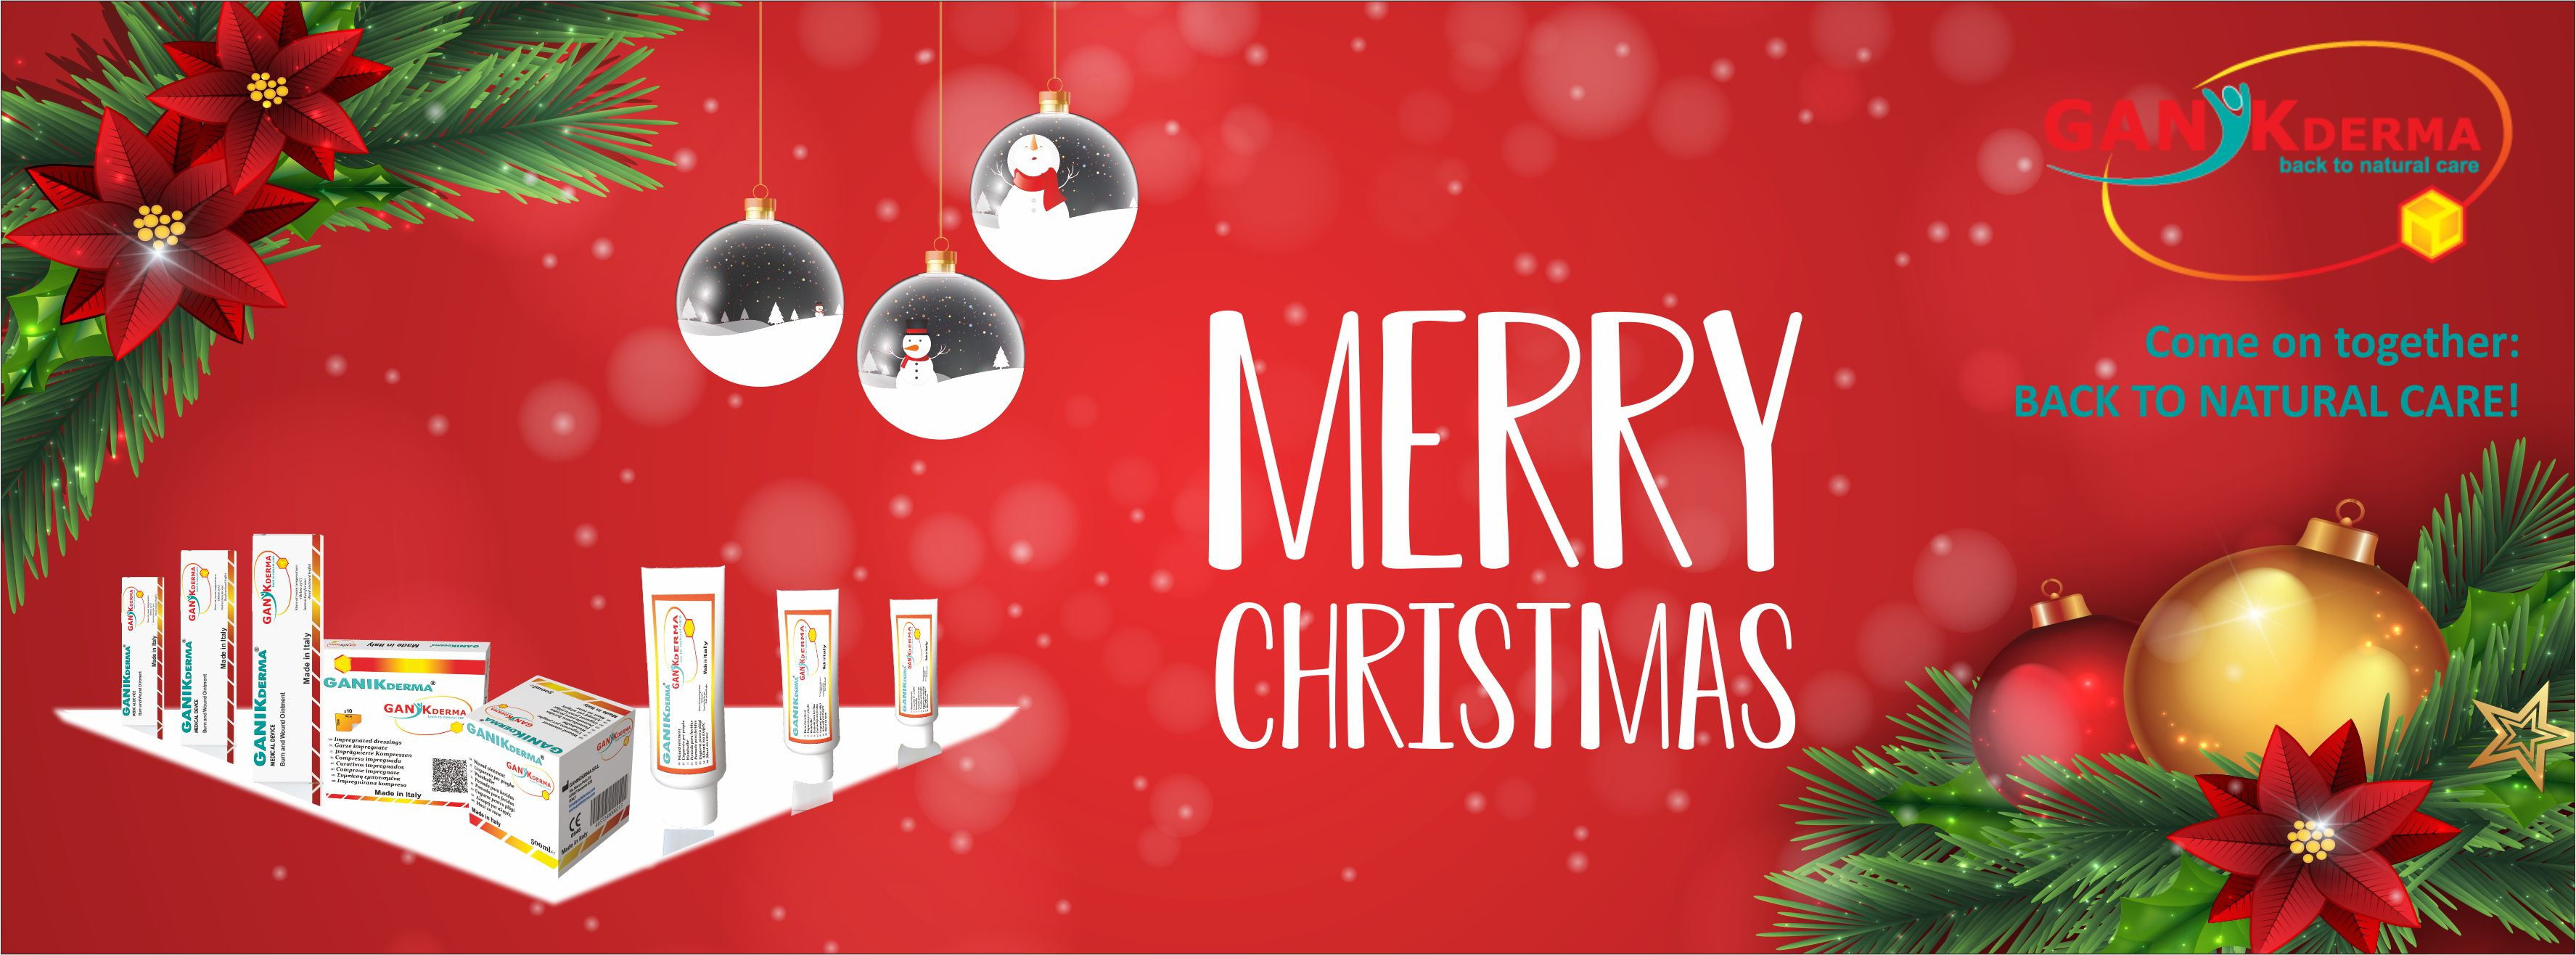 Facebook Cover ganikderma Merry Christmas 2018